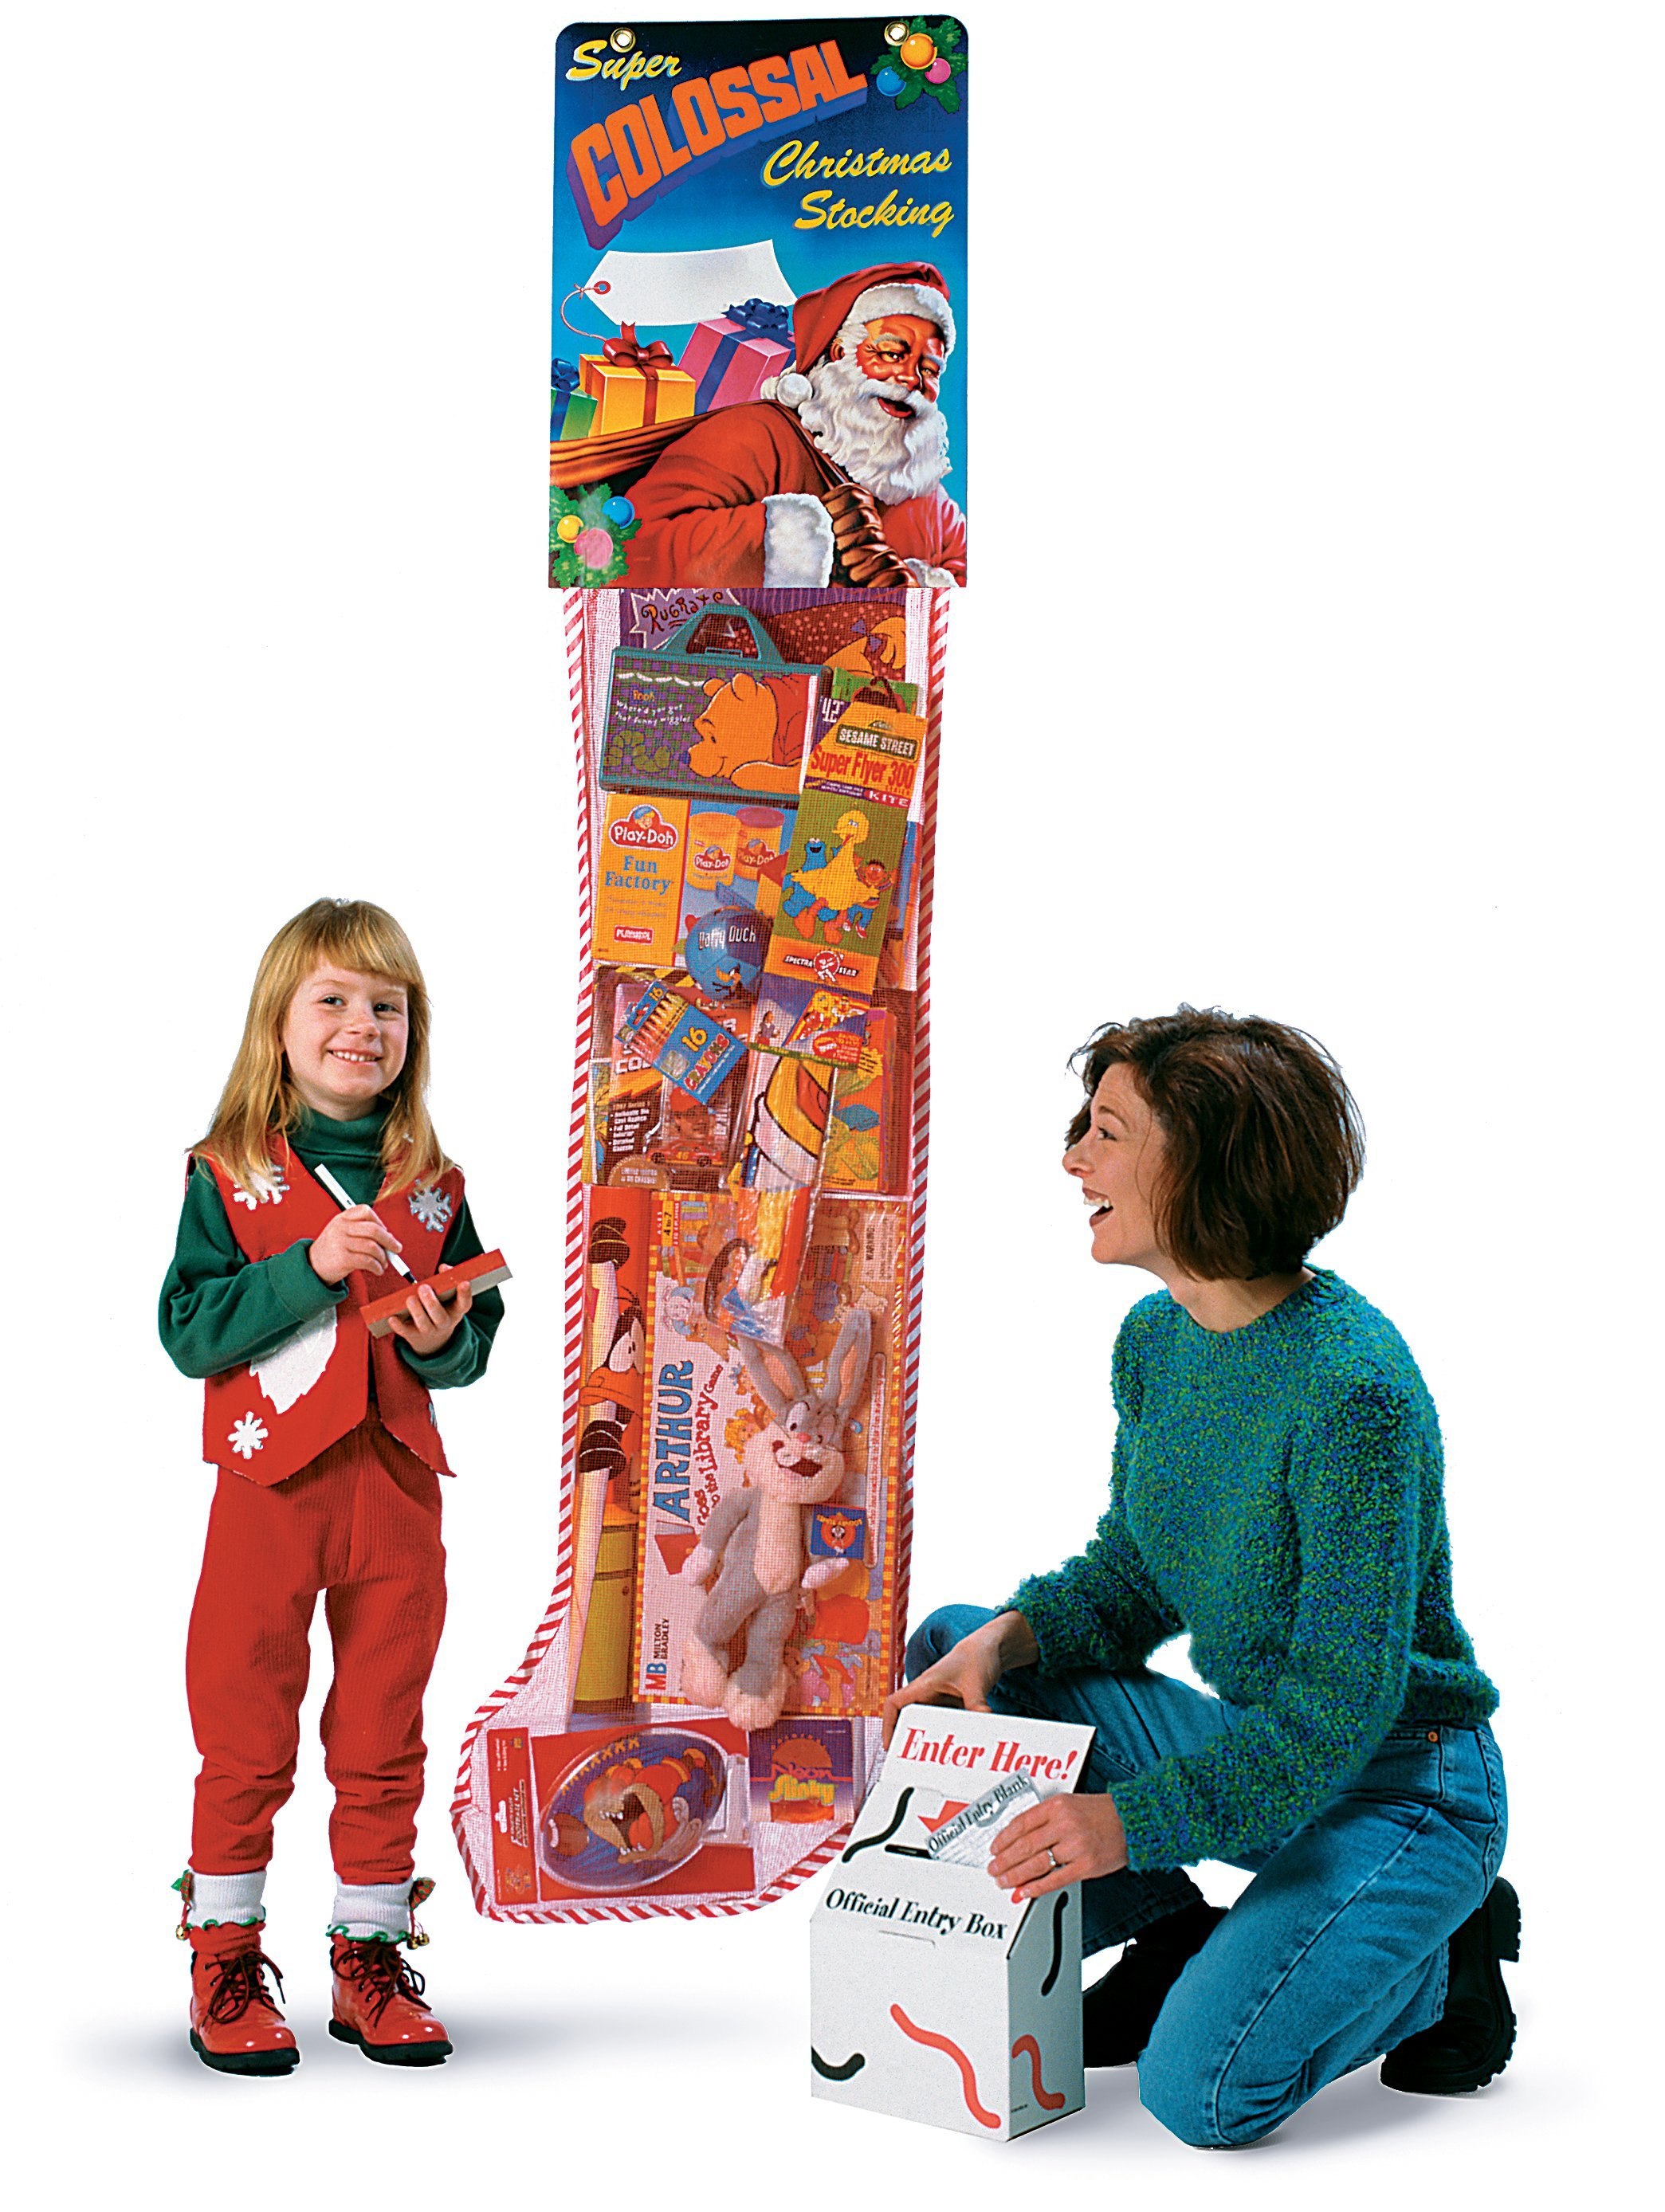 Giant Christmas Stocking  Advertising Premium